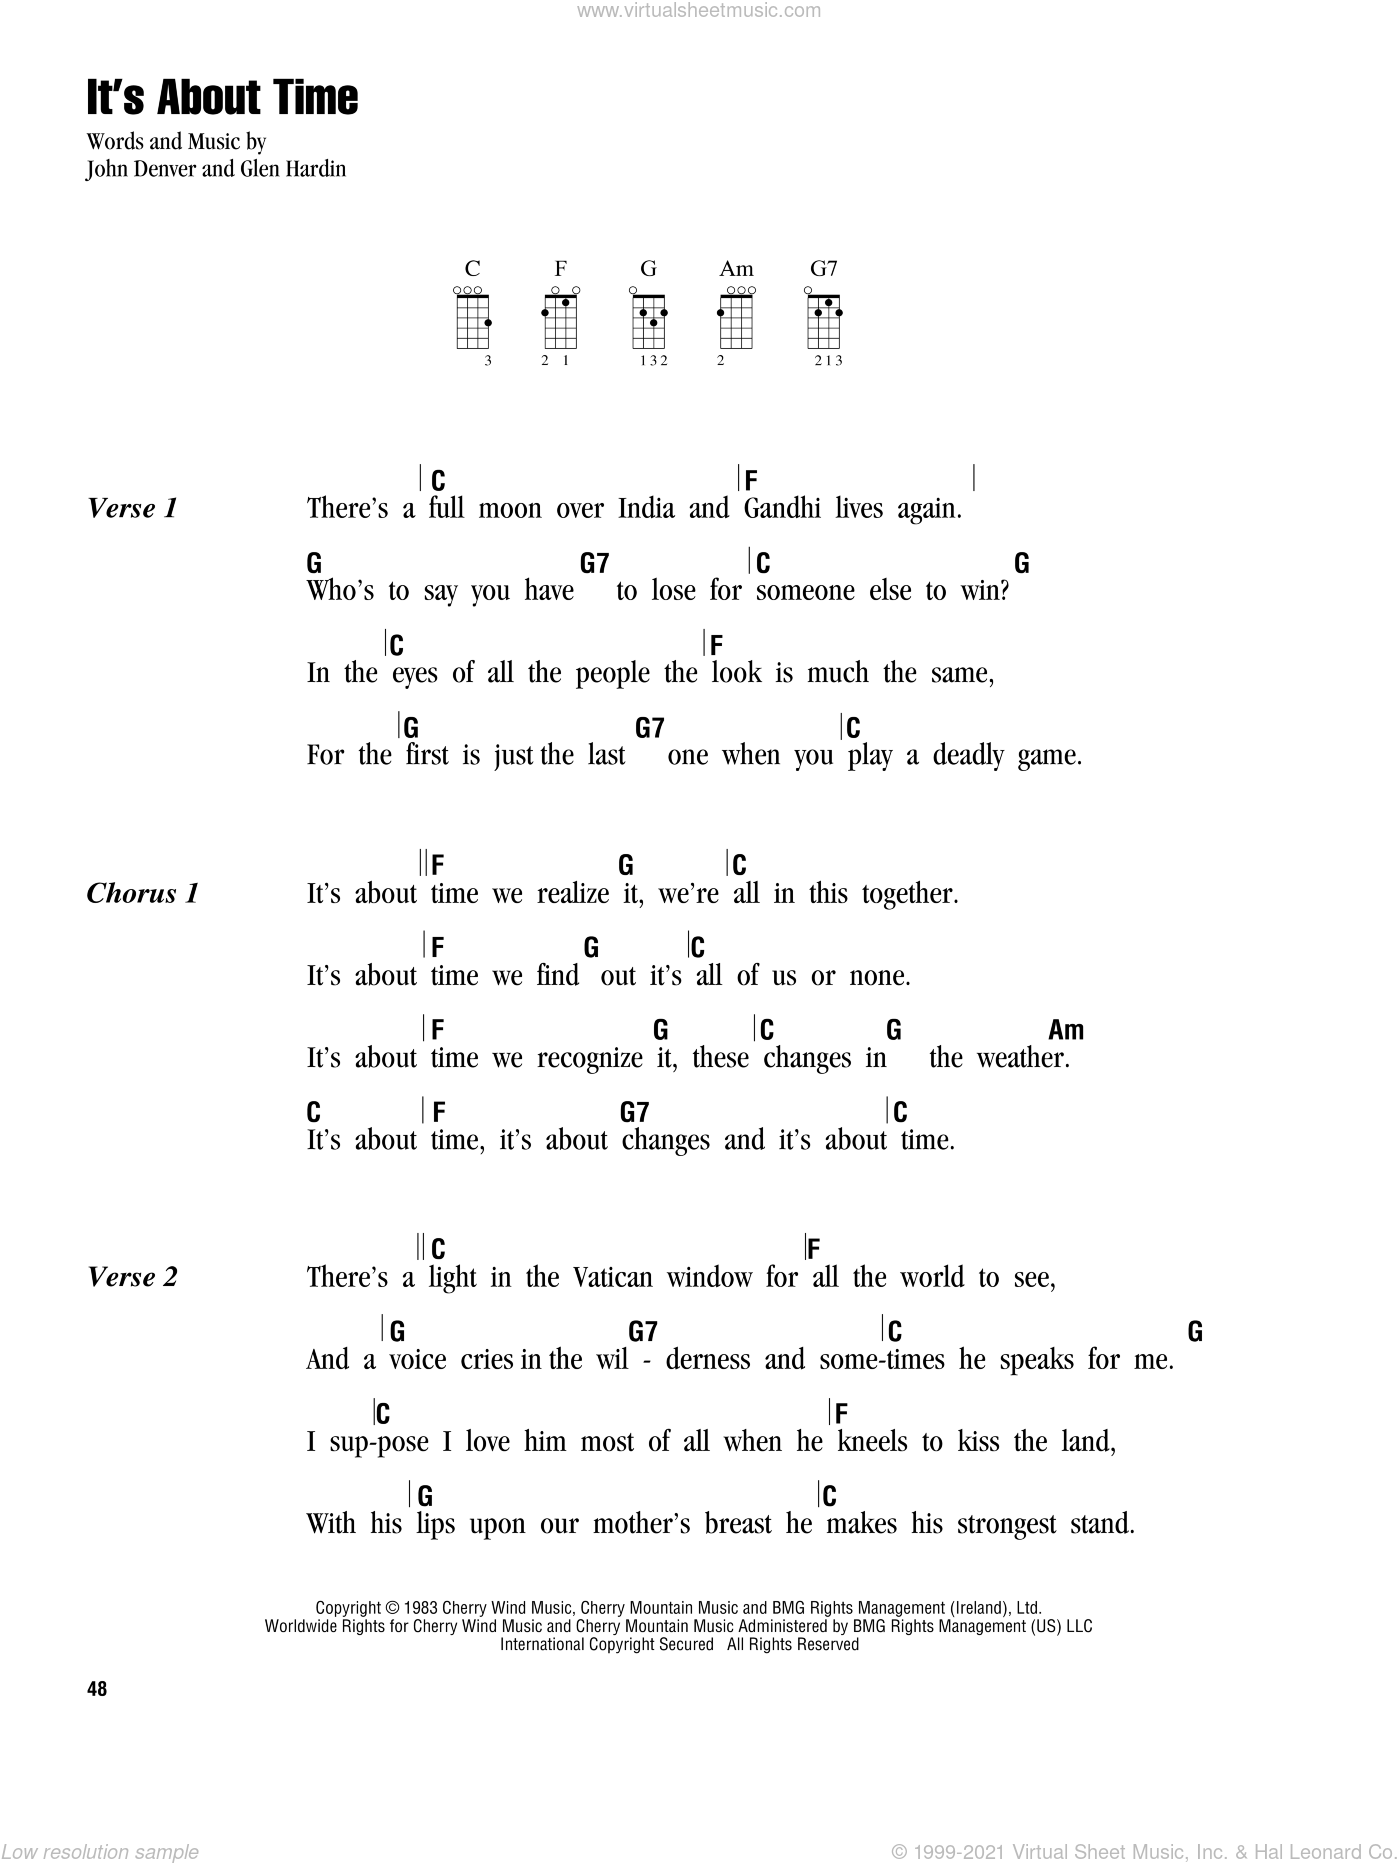 It's About Time sheet music for ukulele (chords) by Glen Hardin and John Denver. Score Image Preview.